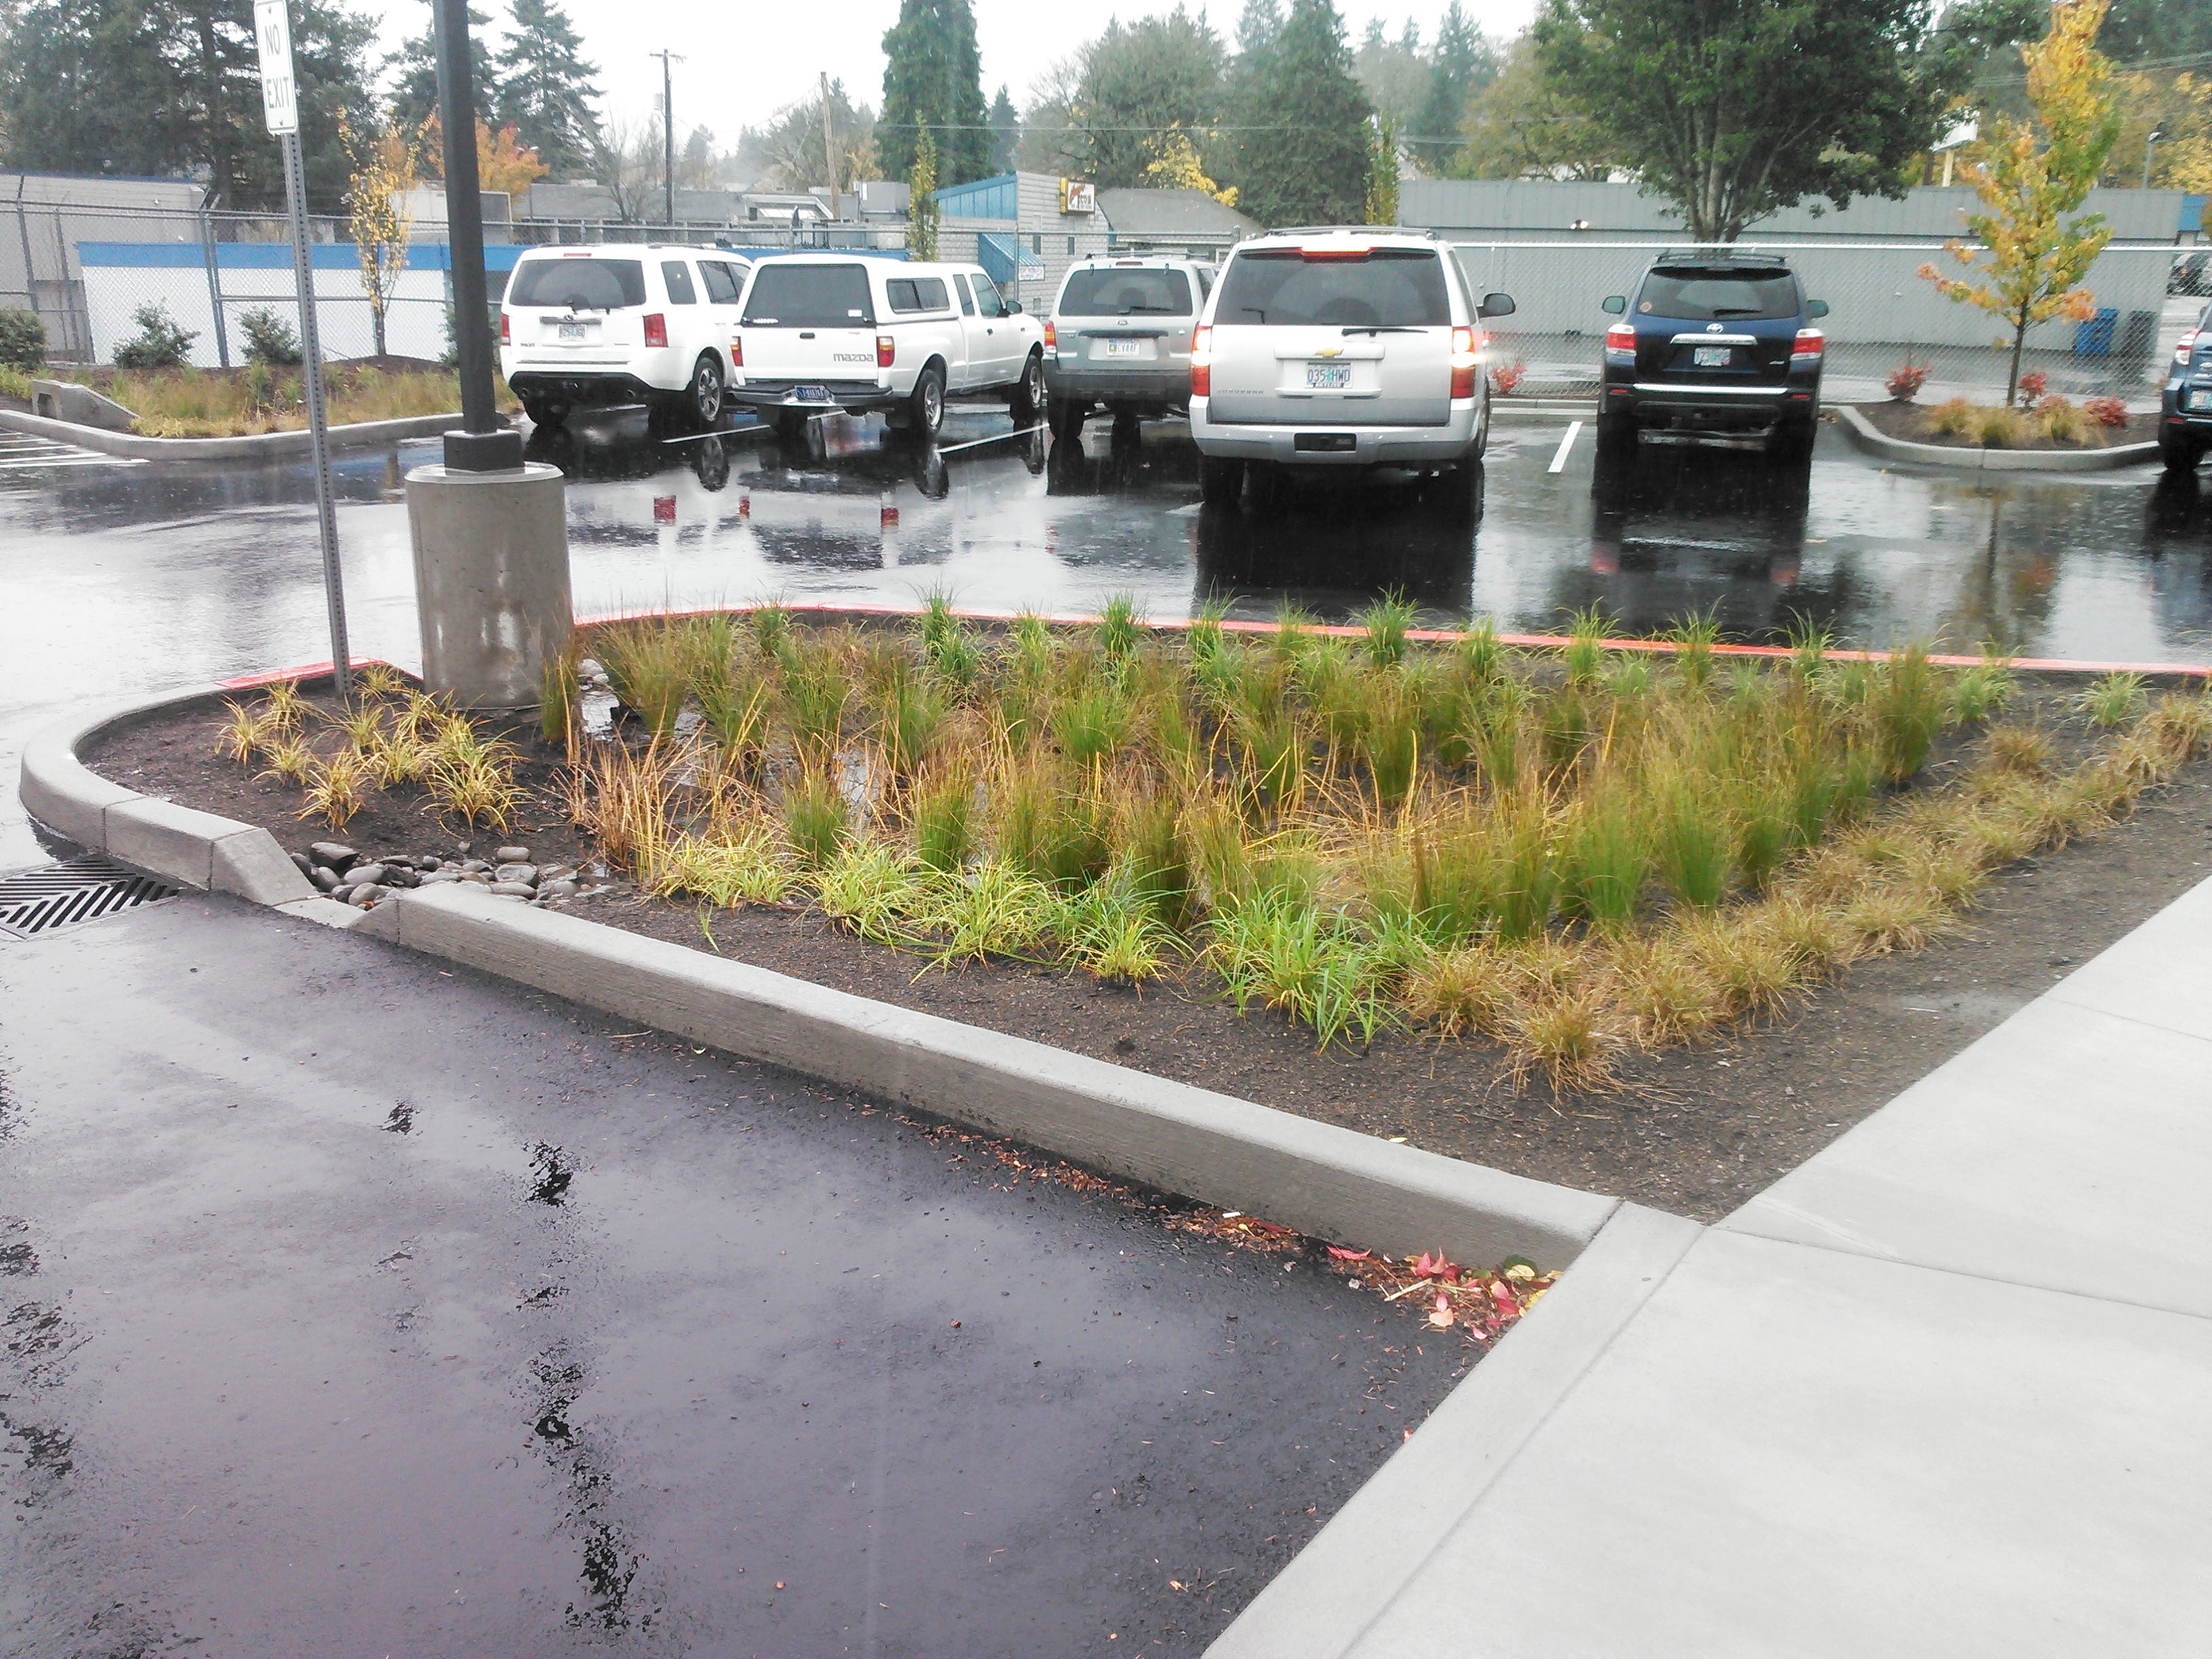 The rain garden infiltration system at the Starbucks on Commercial St SE is an example of the type of on-site stormwater retention projects that would be required of developers in smaller cities under the new permit.